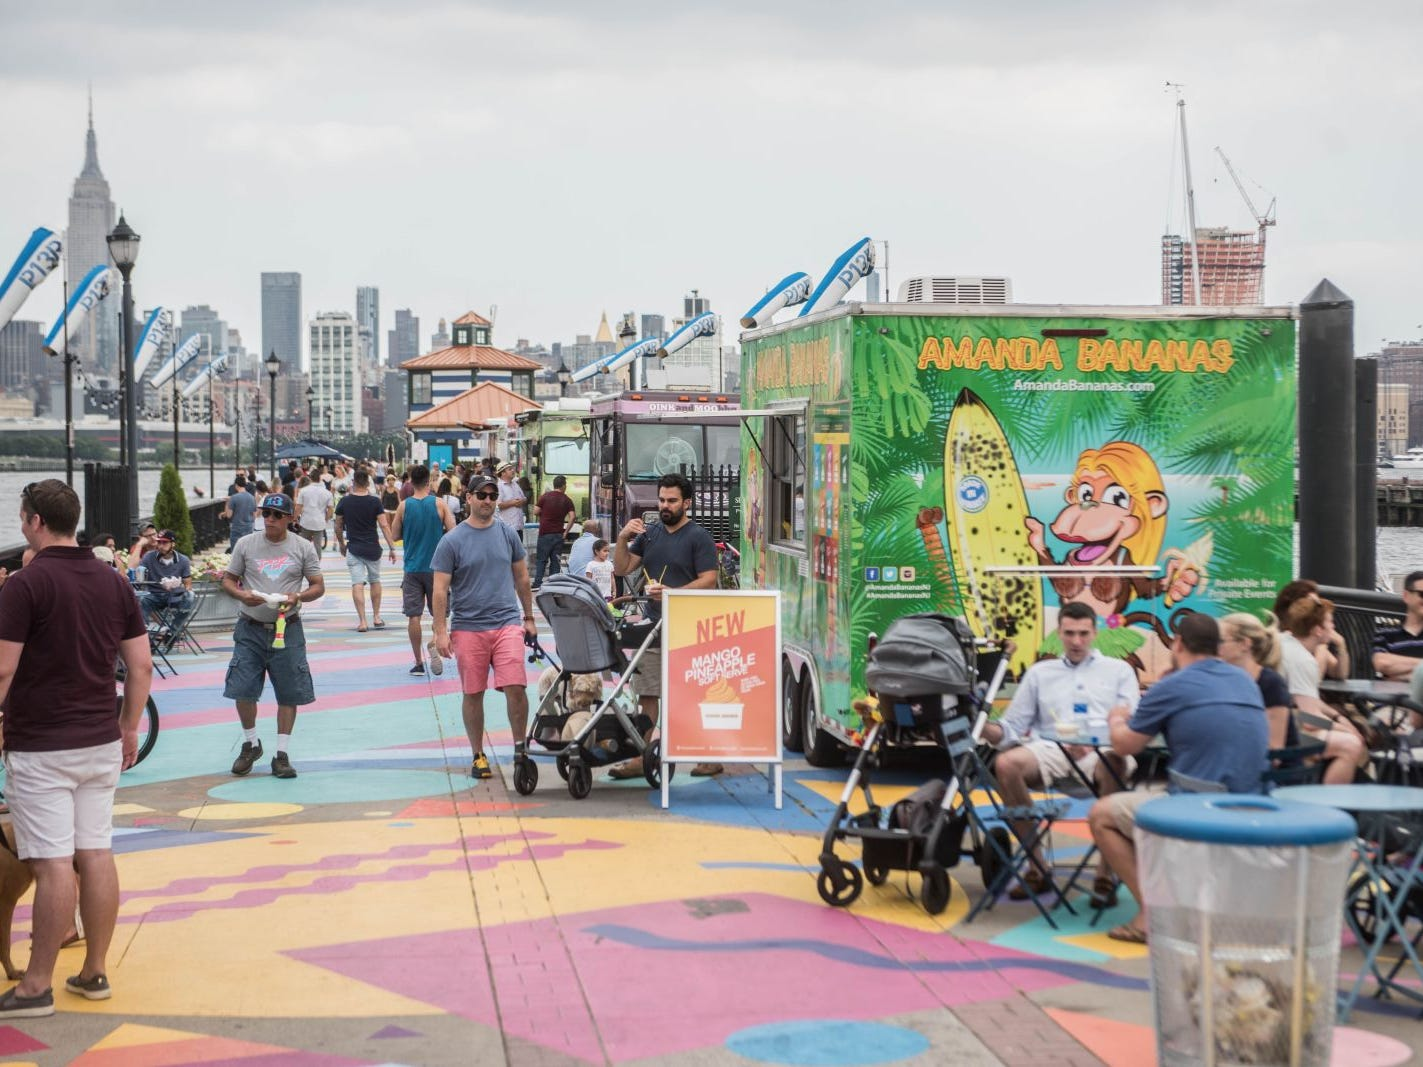 We dropped by Pier 13 in Hoboken to check out the end of summer fun in the area. 08/26/2018